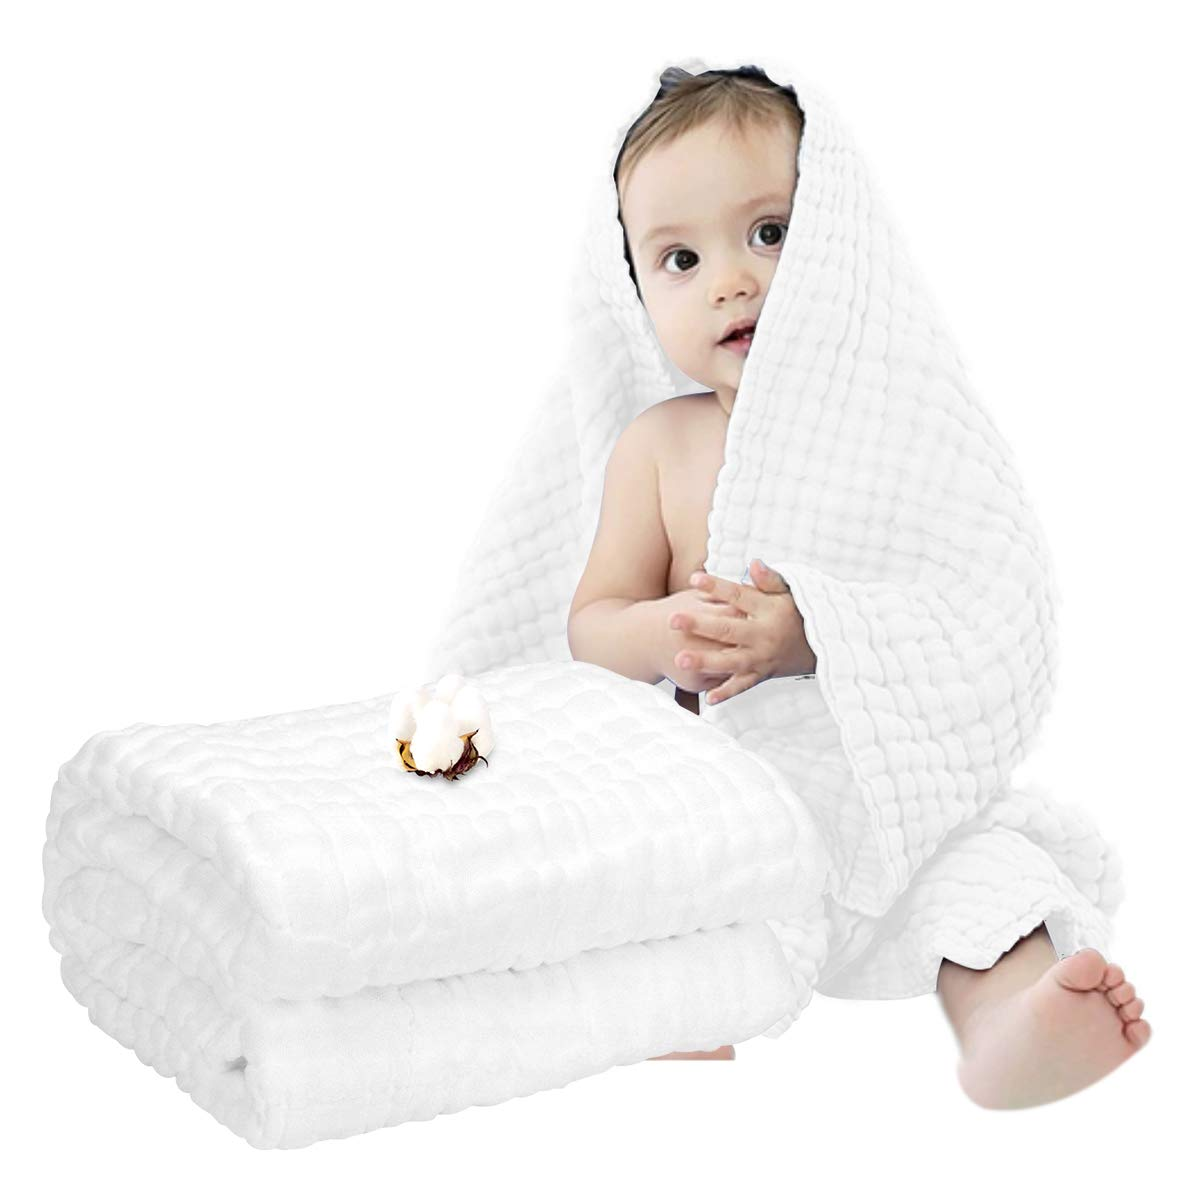 FOOK FISH Muslin Baby Towel Super Soft Cotton Baby Bath Towel 6 Layers Infant Towel Newborn Towel Blanket Suitable for Baby's Delicate Skin 40 x 40inches White